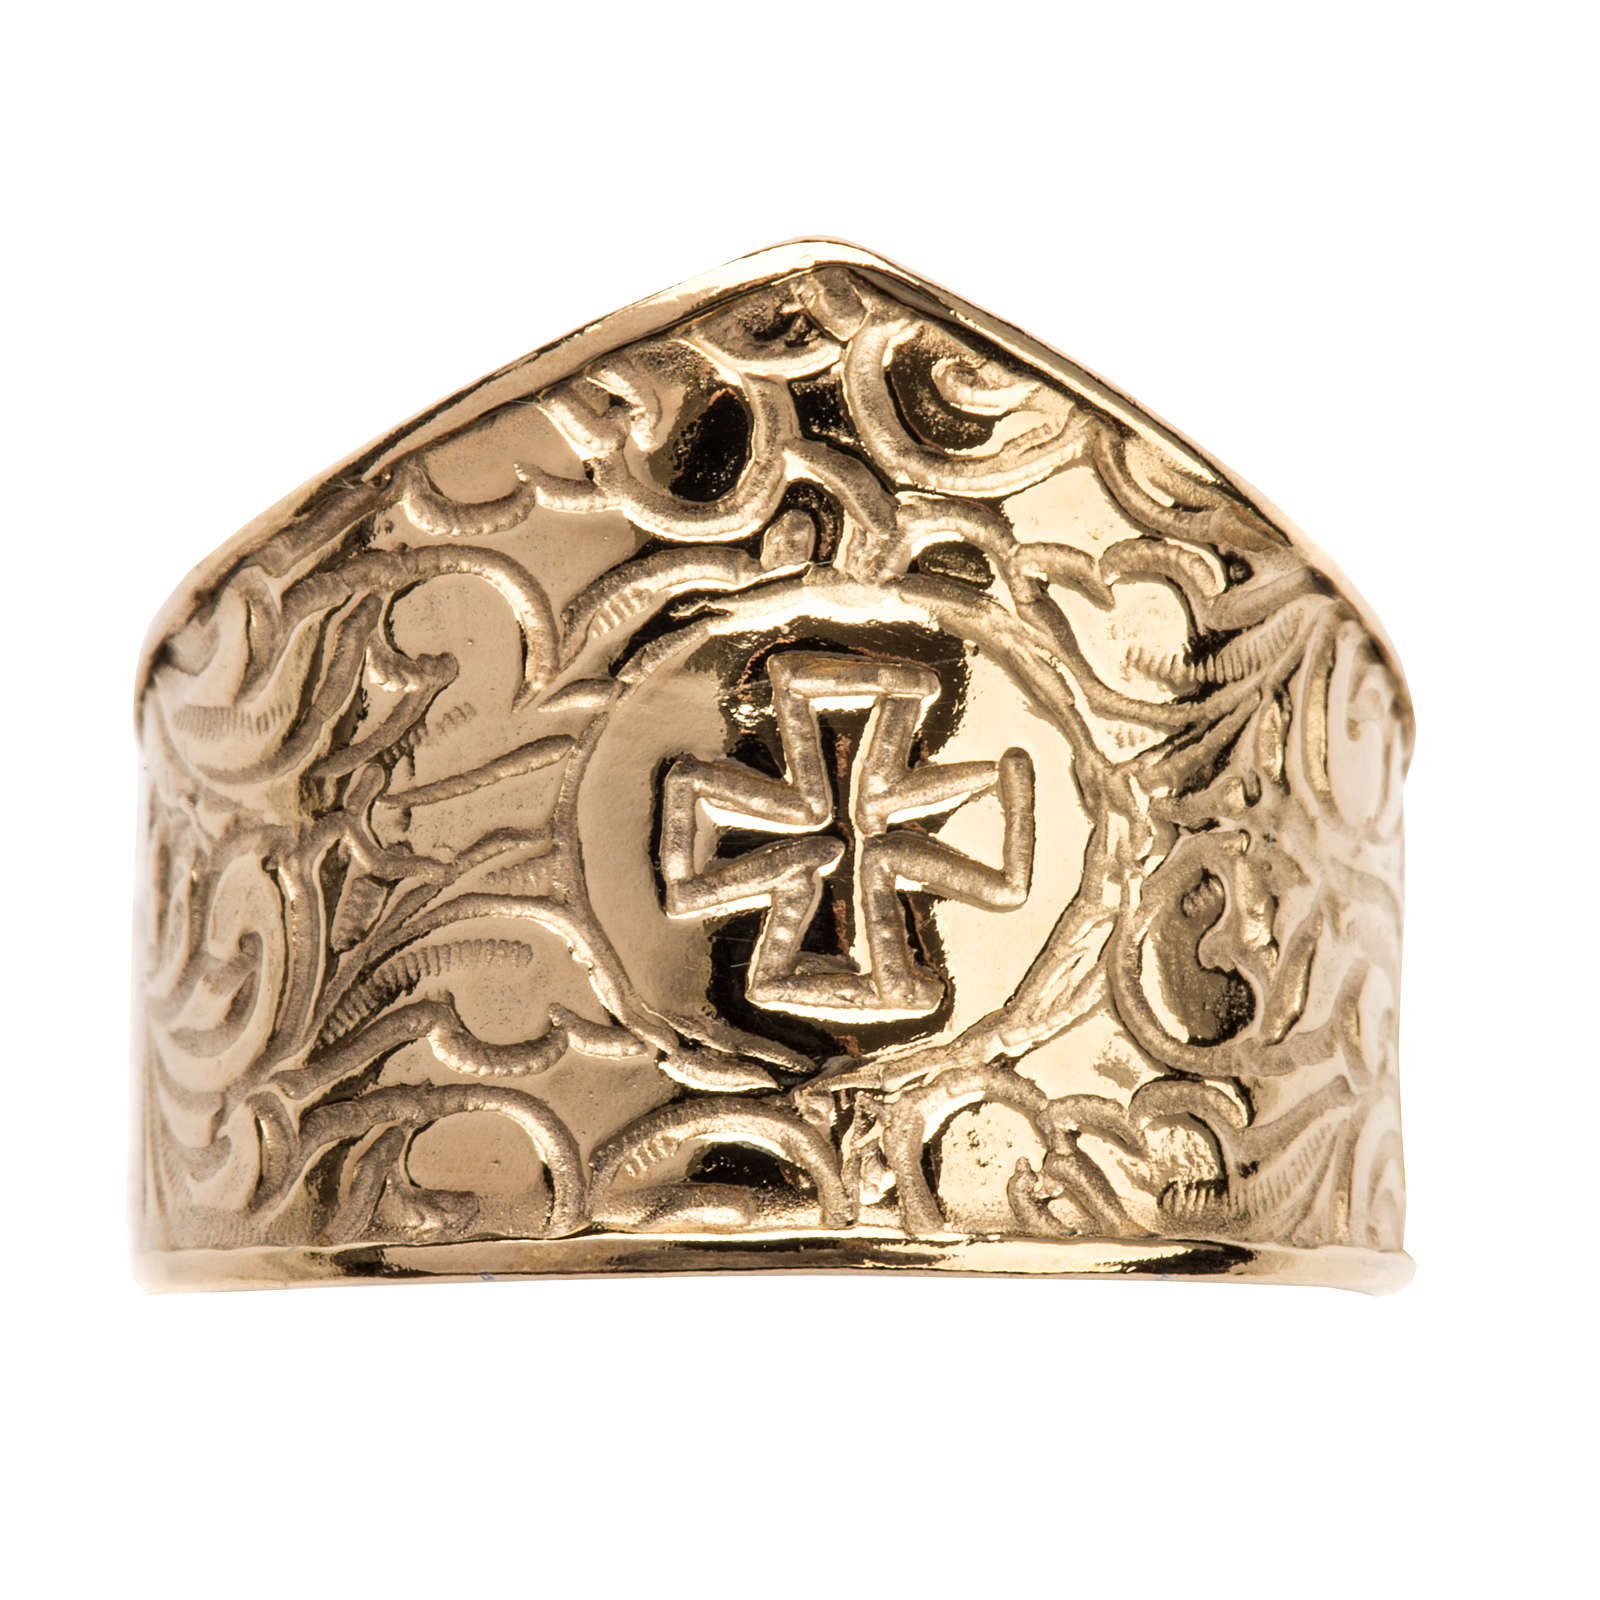 Bishop Ring in gold plated silver 925, cross decoration 3